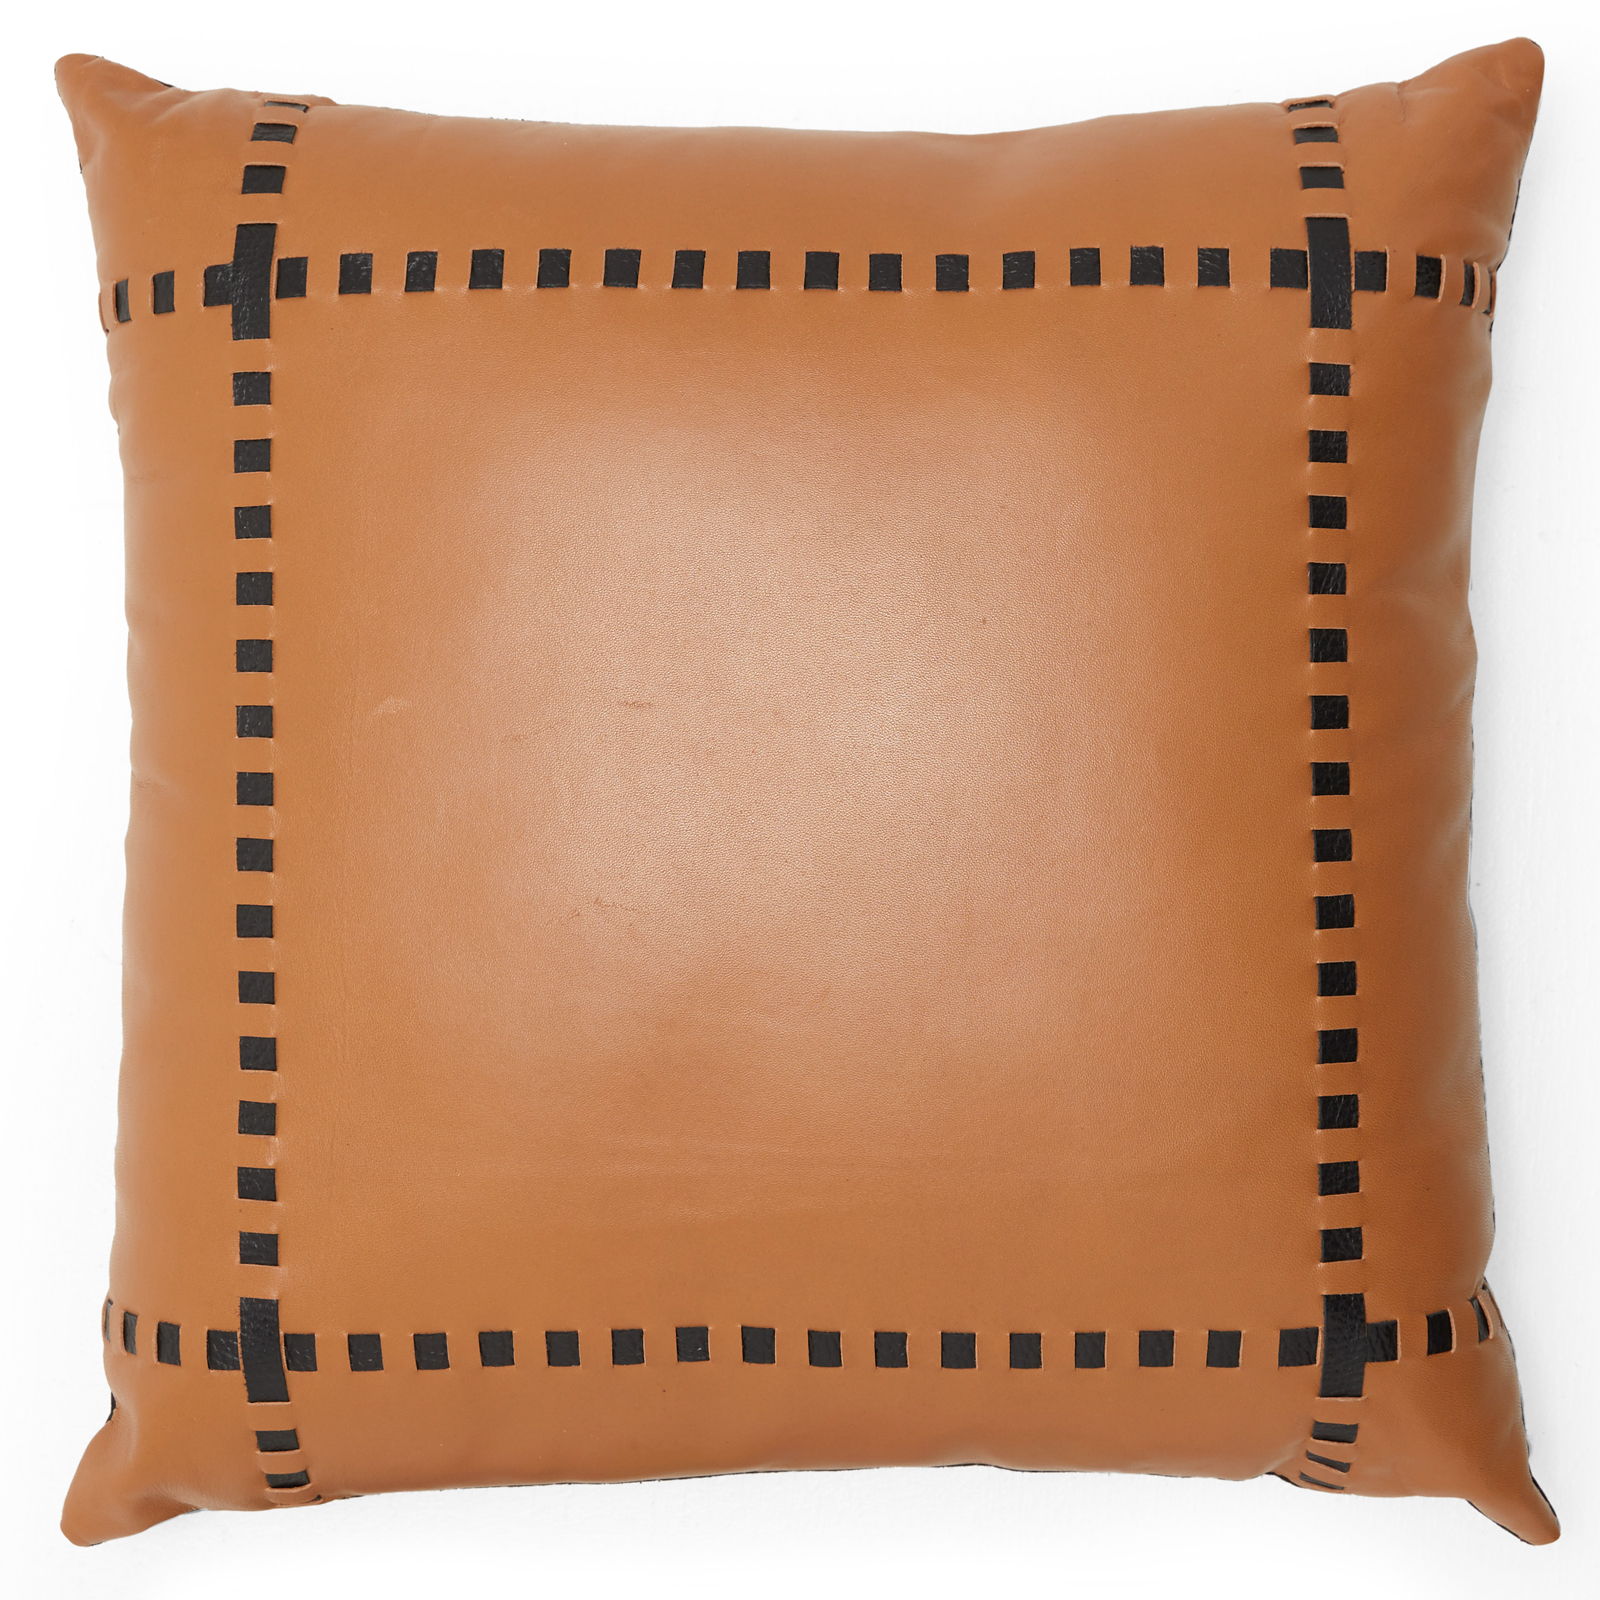 "MoDRN Industrial Cow Leather Decorative Throw Pillow, 16"" x 16"""